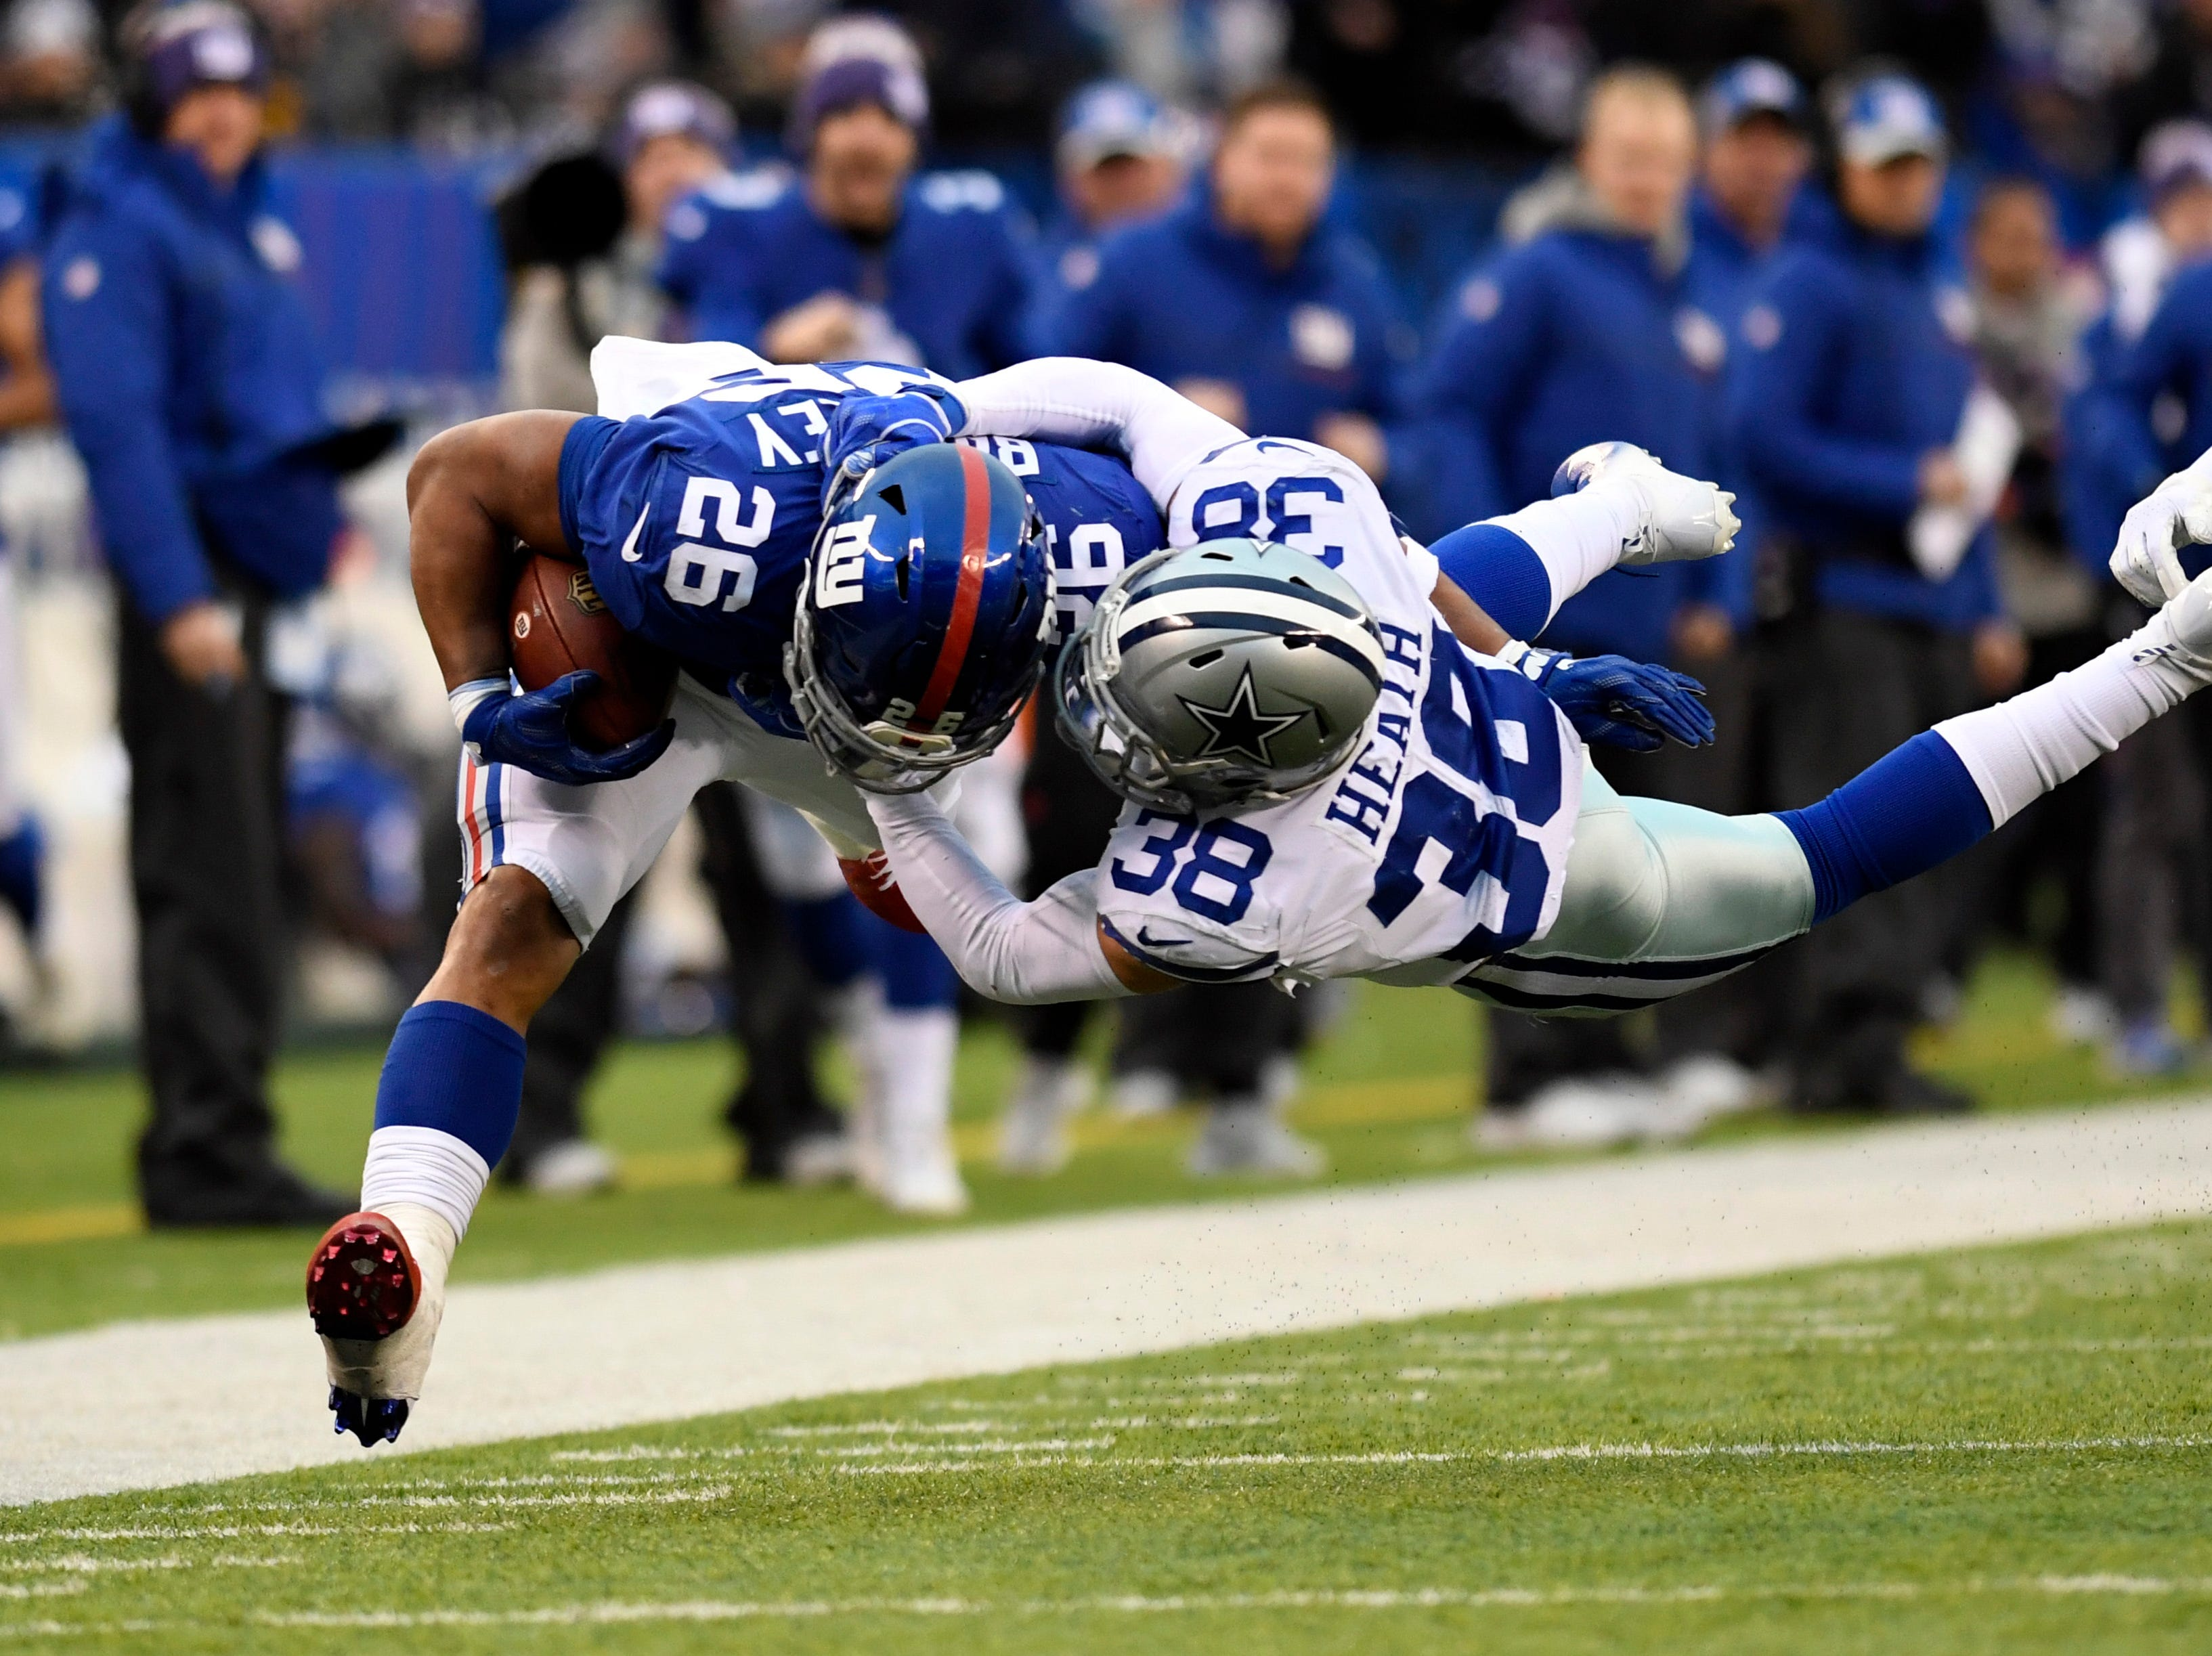 New York Giants running back Saquon Barkley (26) is tackled by Dallas Cowboys strong safety Jeff Heath (38) in the second half. The New York Giants lose to the Dallas Cowboys 36-35 on Sunday, Dec. 30, 2018, in East Rutherford.